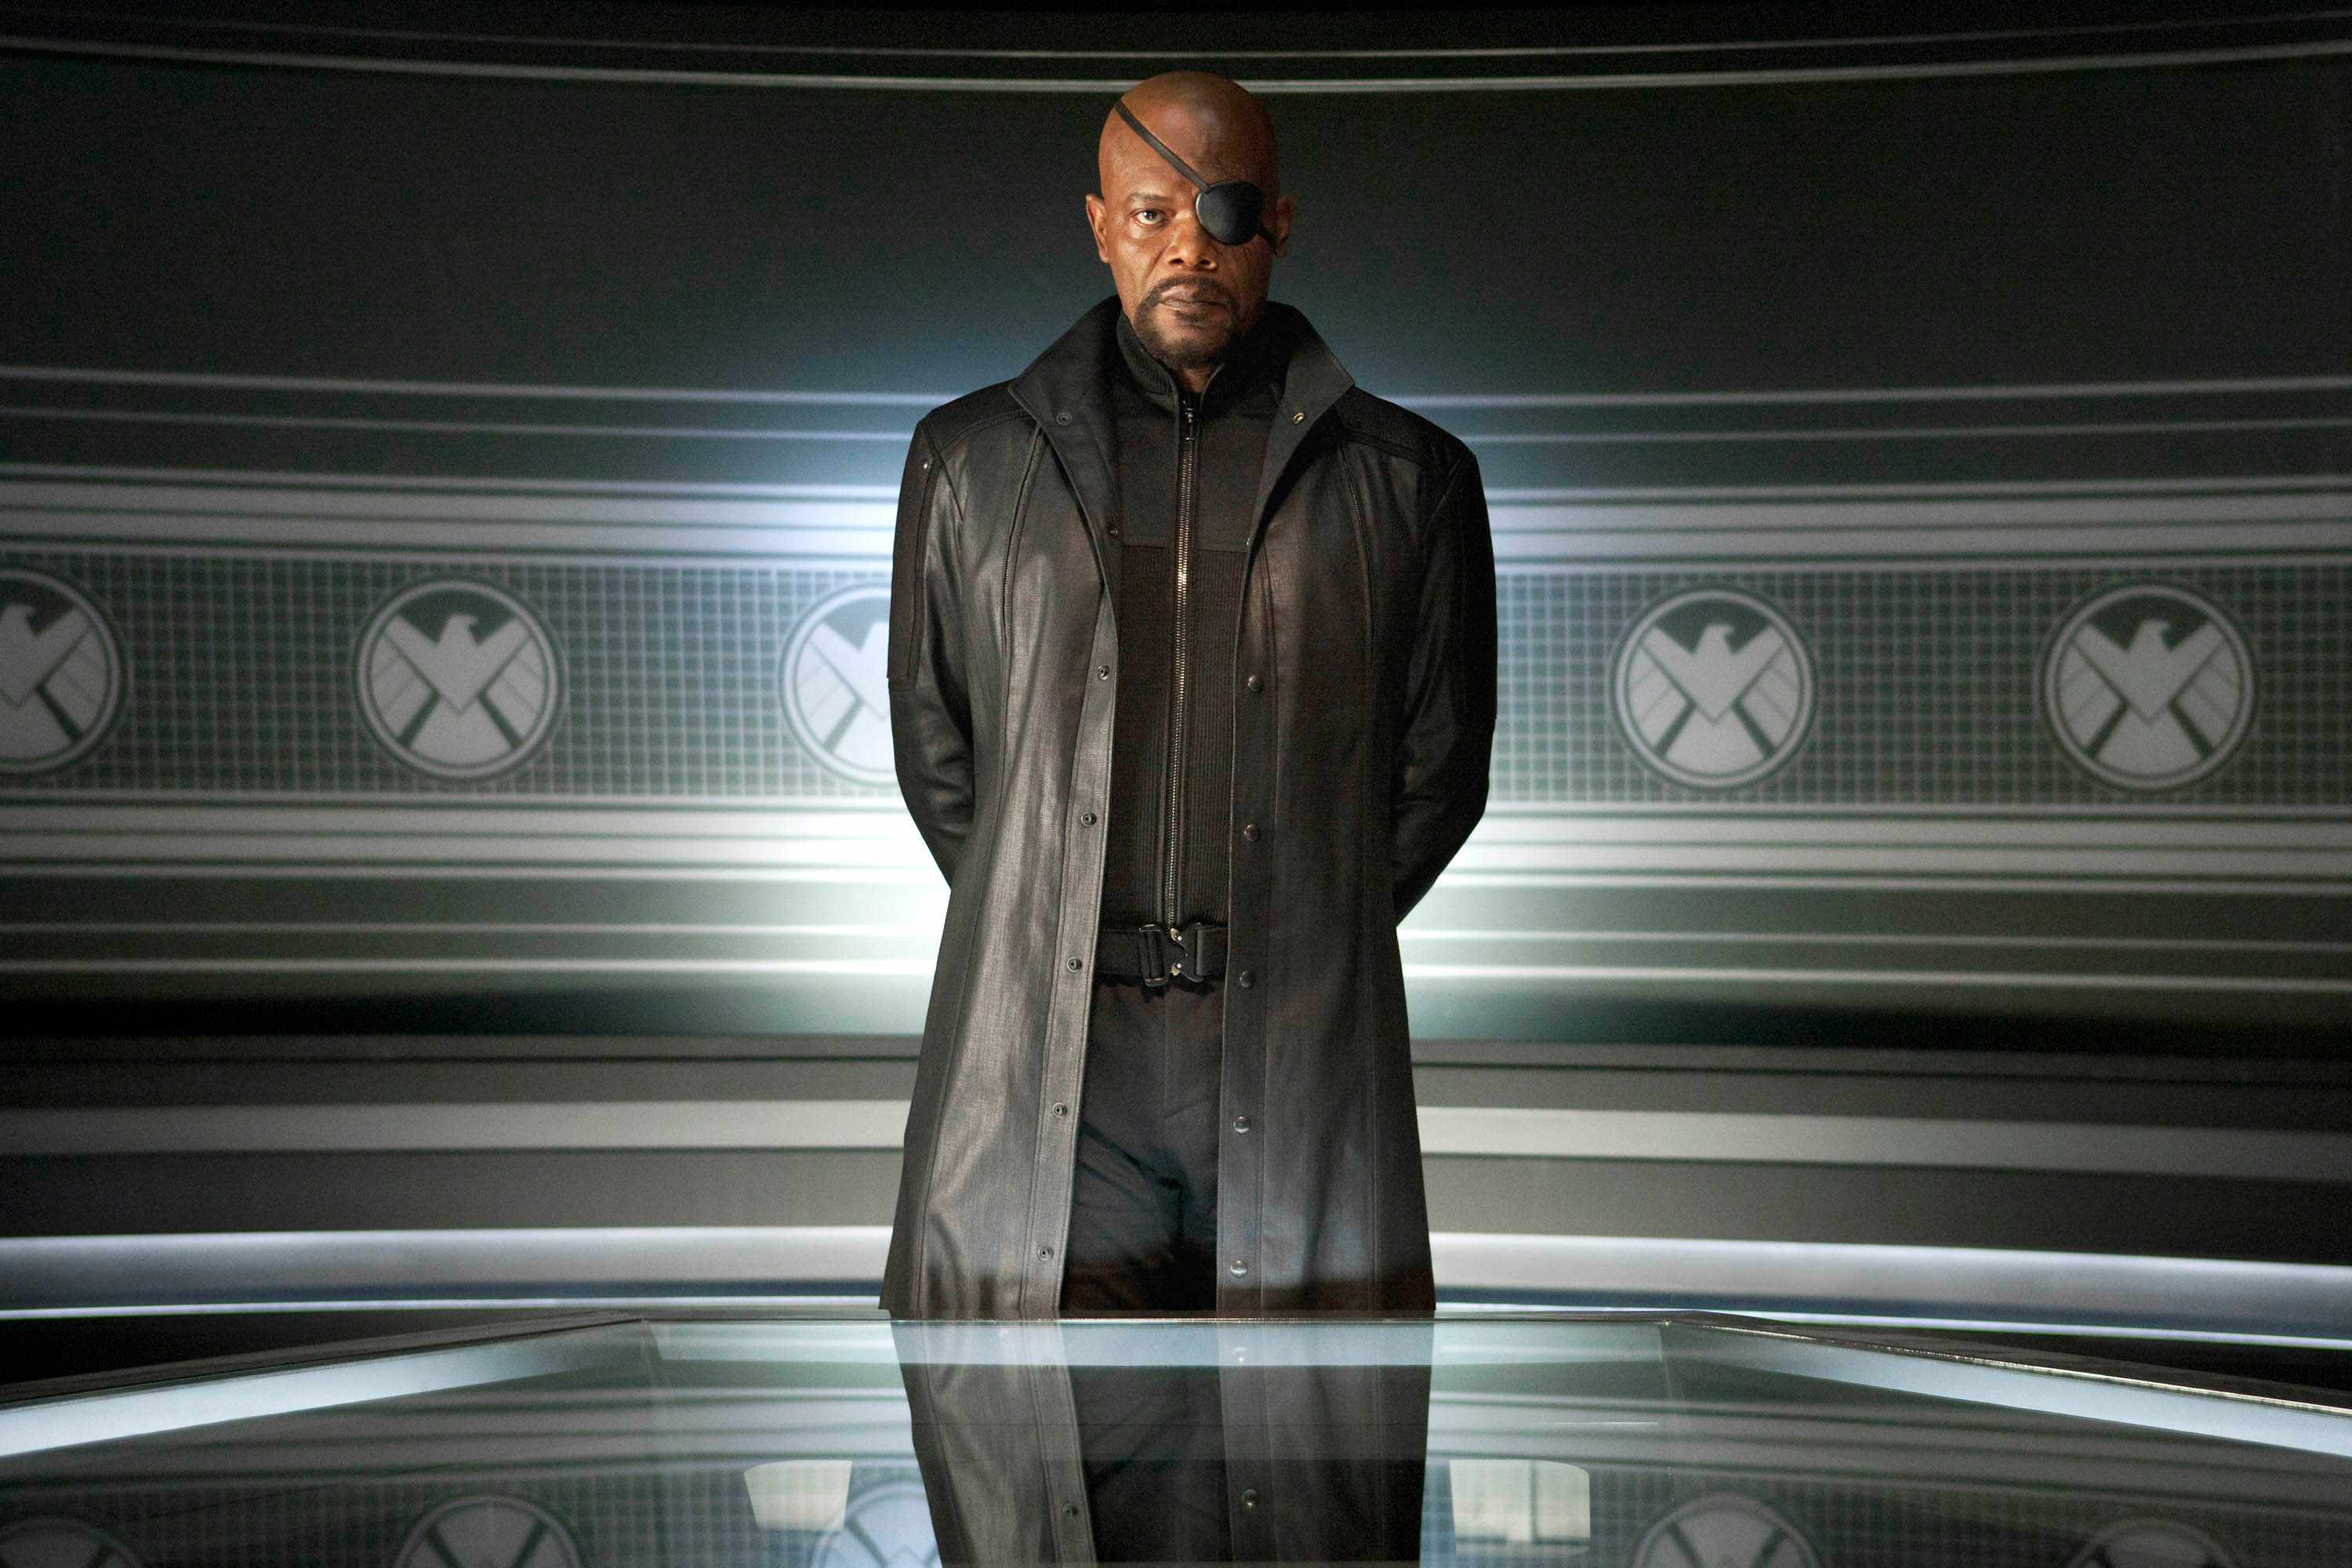 Samuel L Jackson as Nick Fury (Disney)